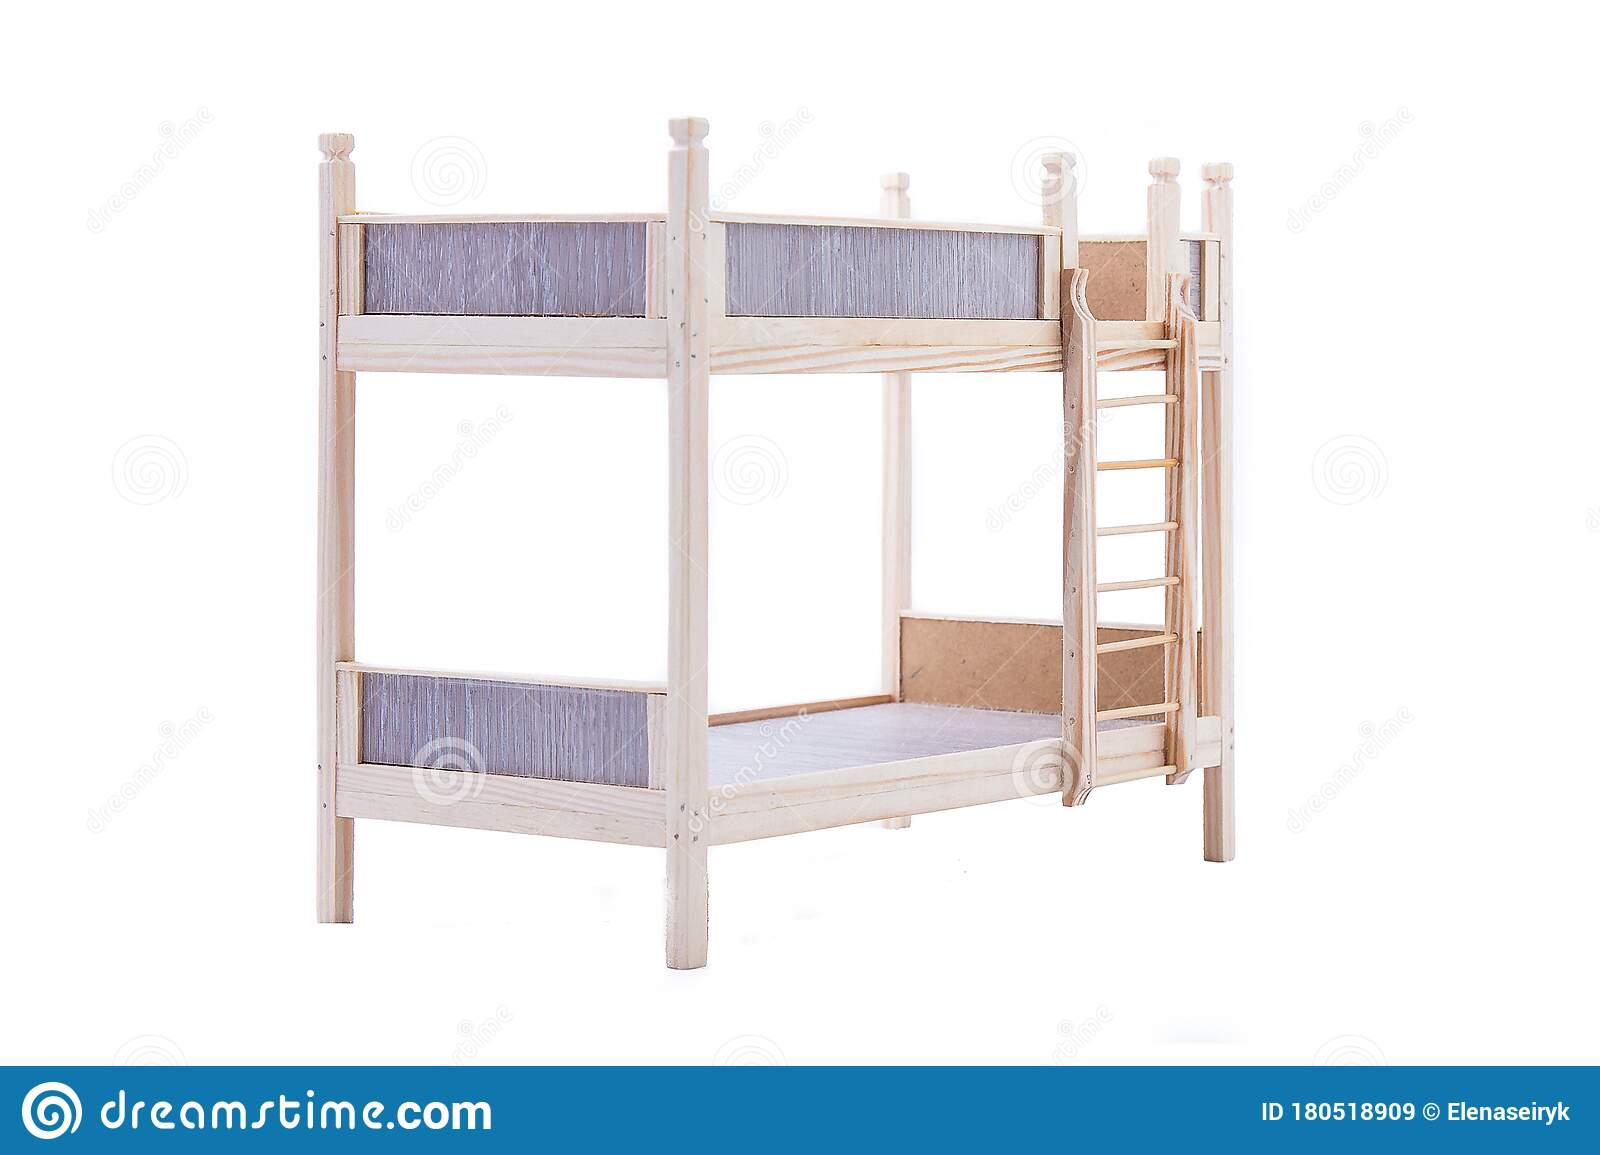 Toy Wooden Bunk Bed For A Doll Isolated On White Stock Image Image Of Isolated Doll 180518909